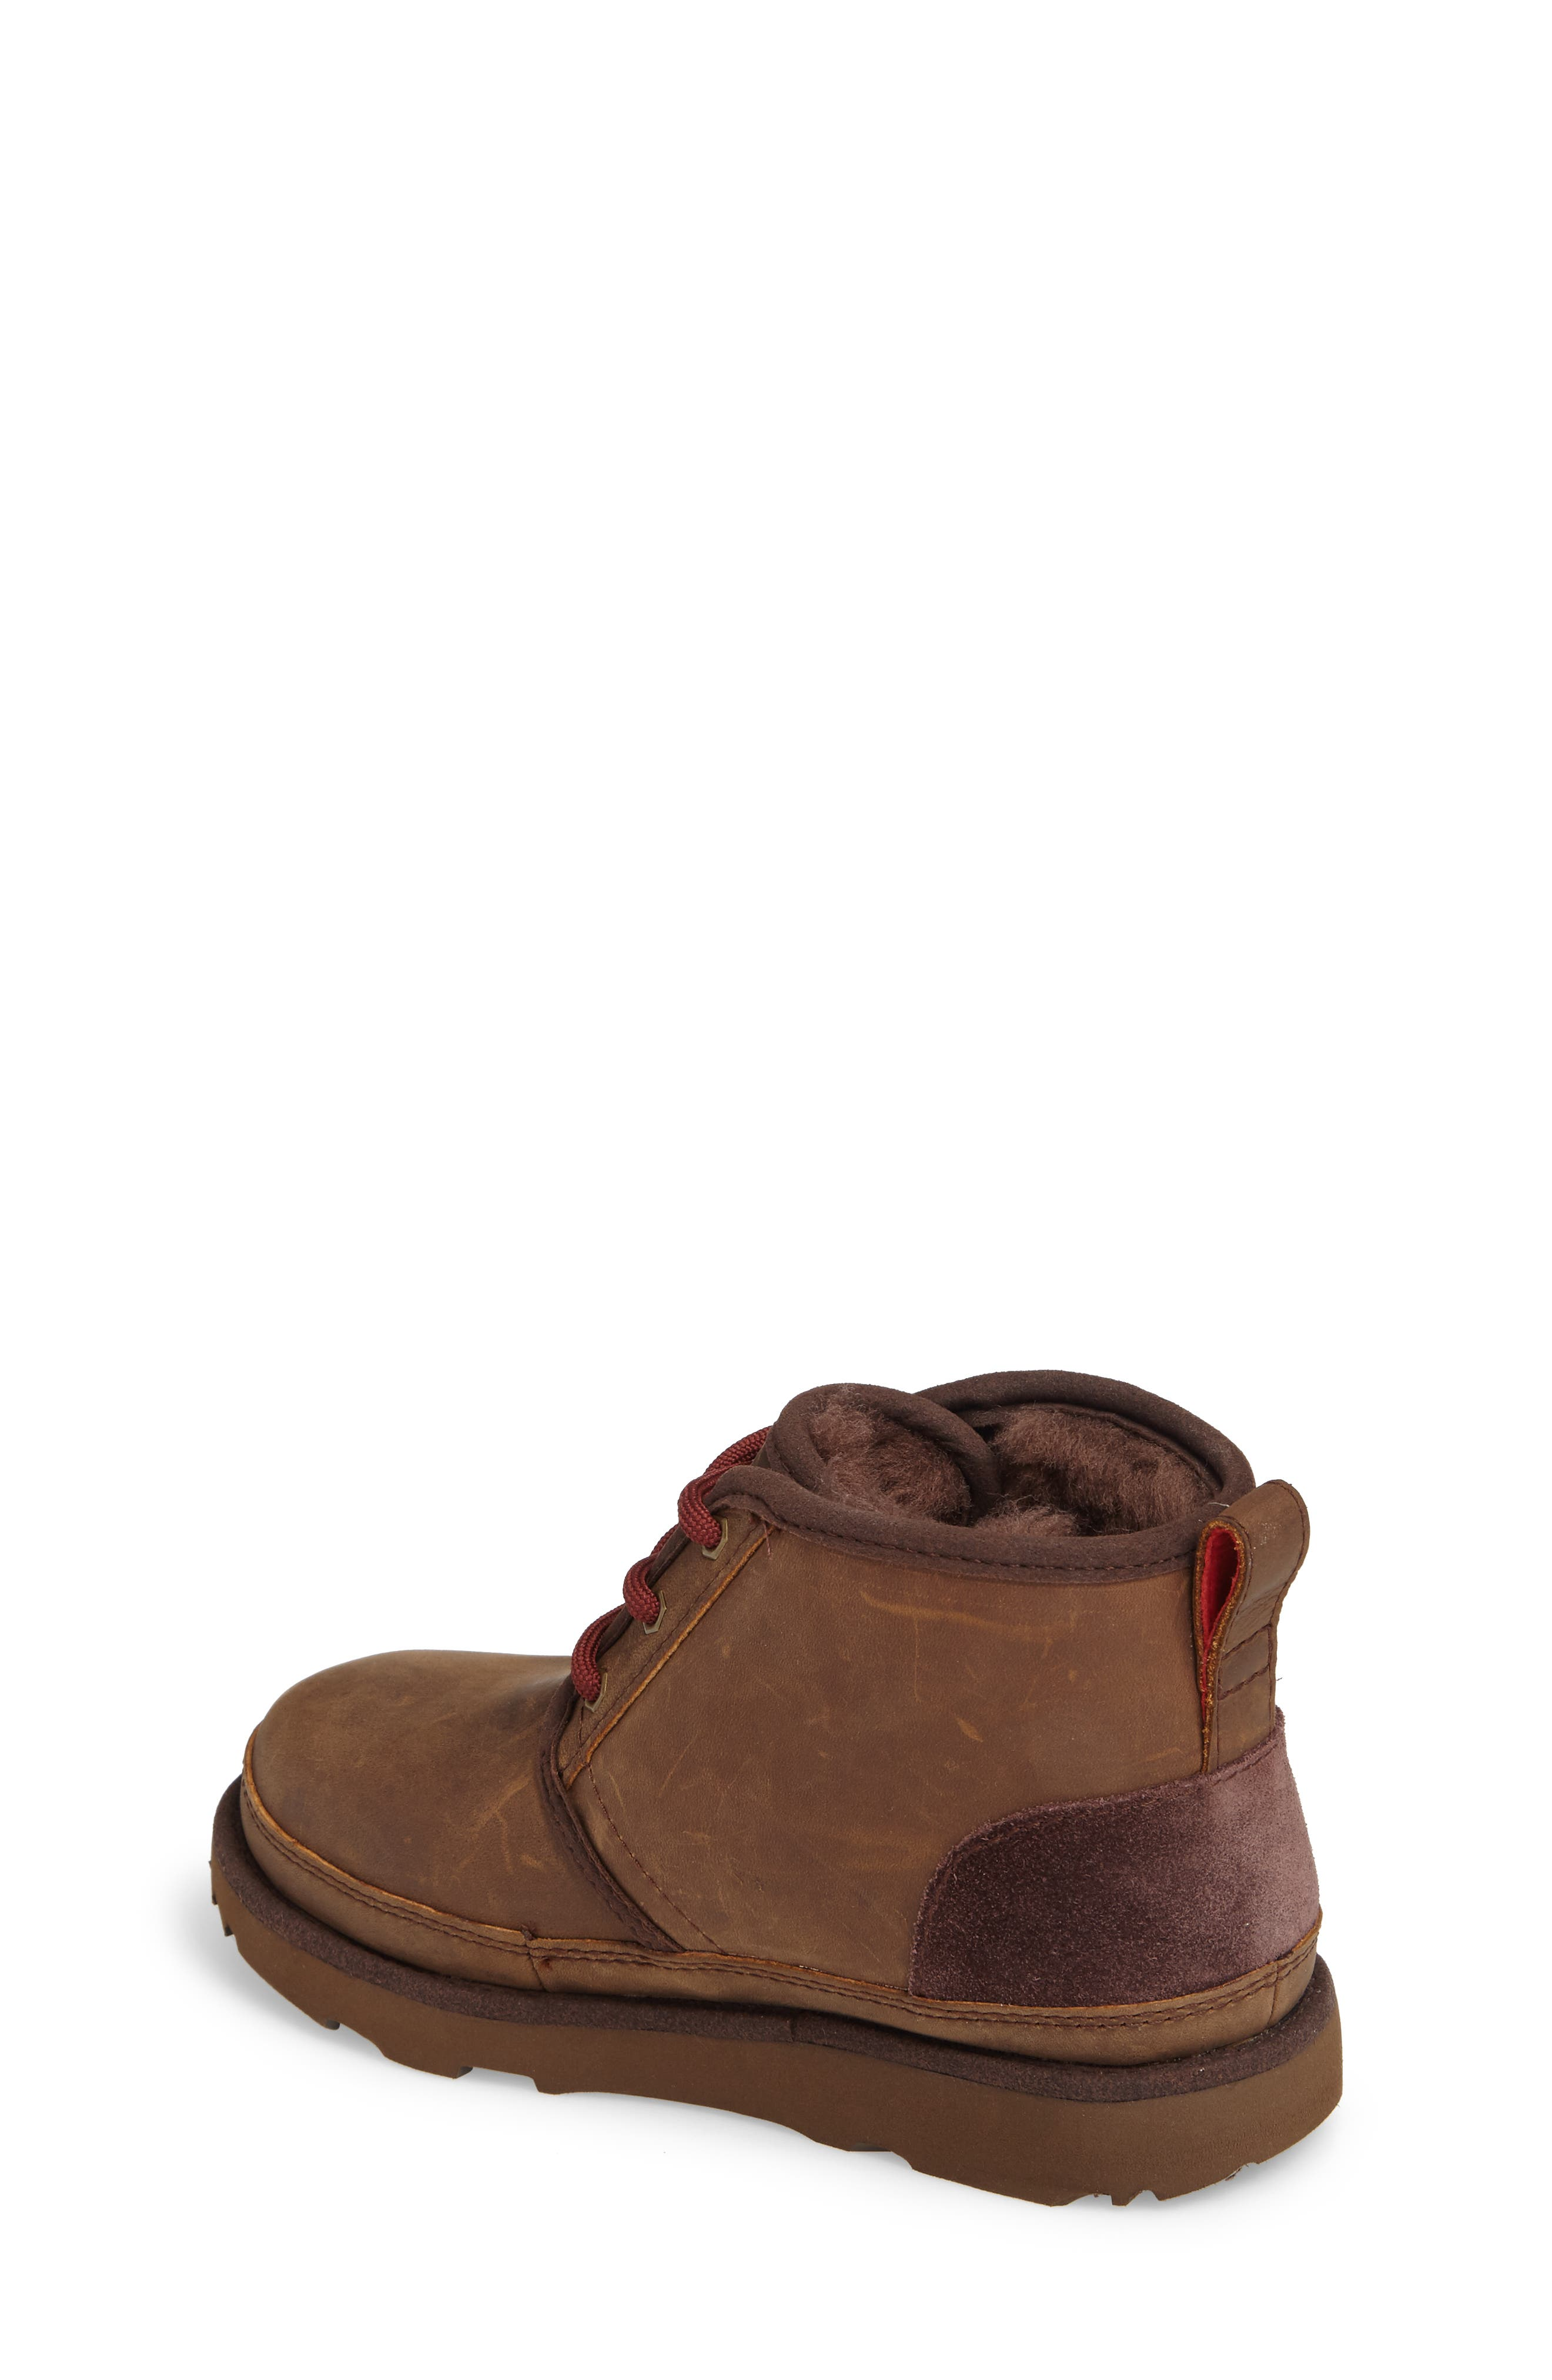 UGG<SUP>®</SUP>, Neumel II Waterproof Chukka, Alternate thumbnail 2, color, GRIZZLY